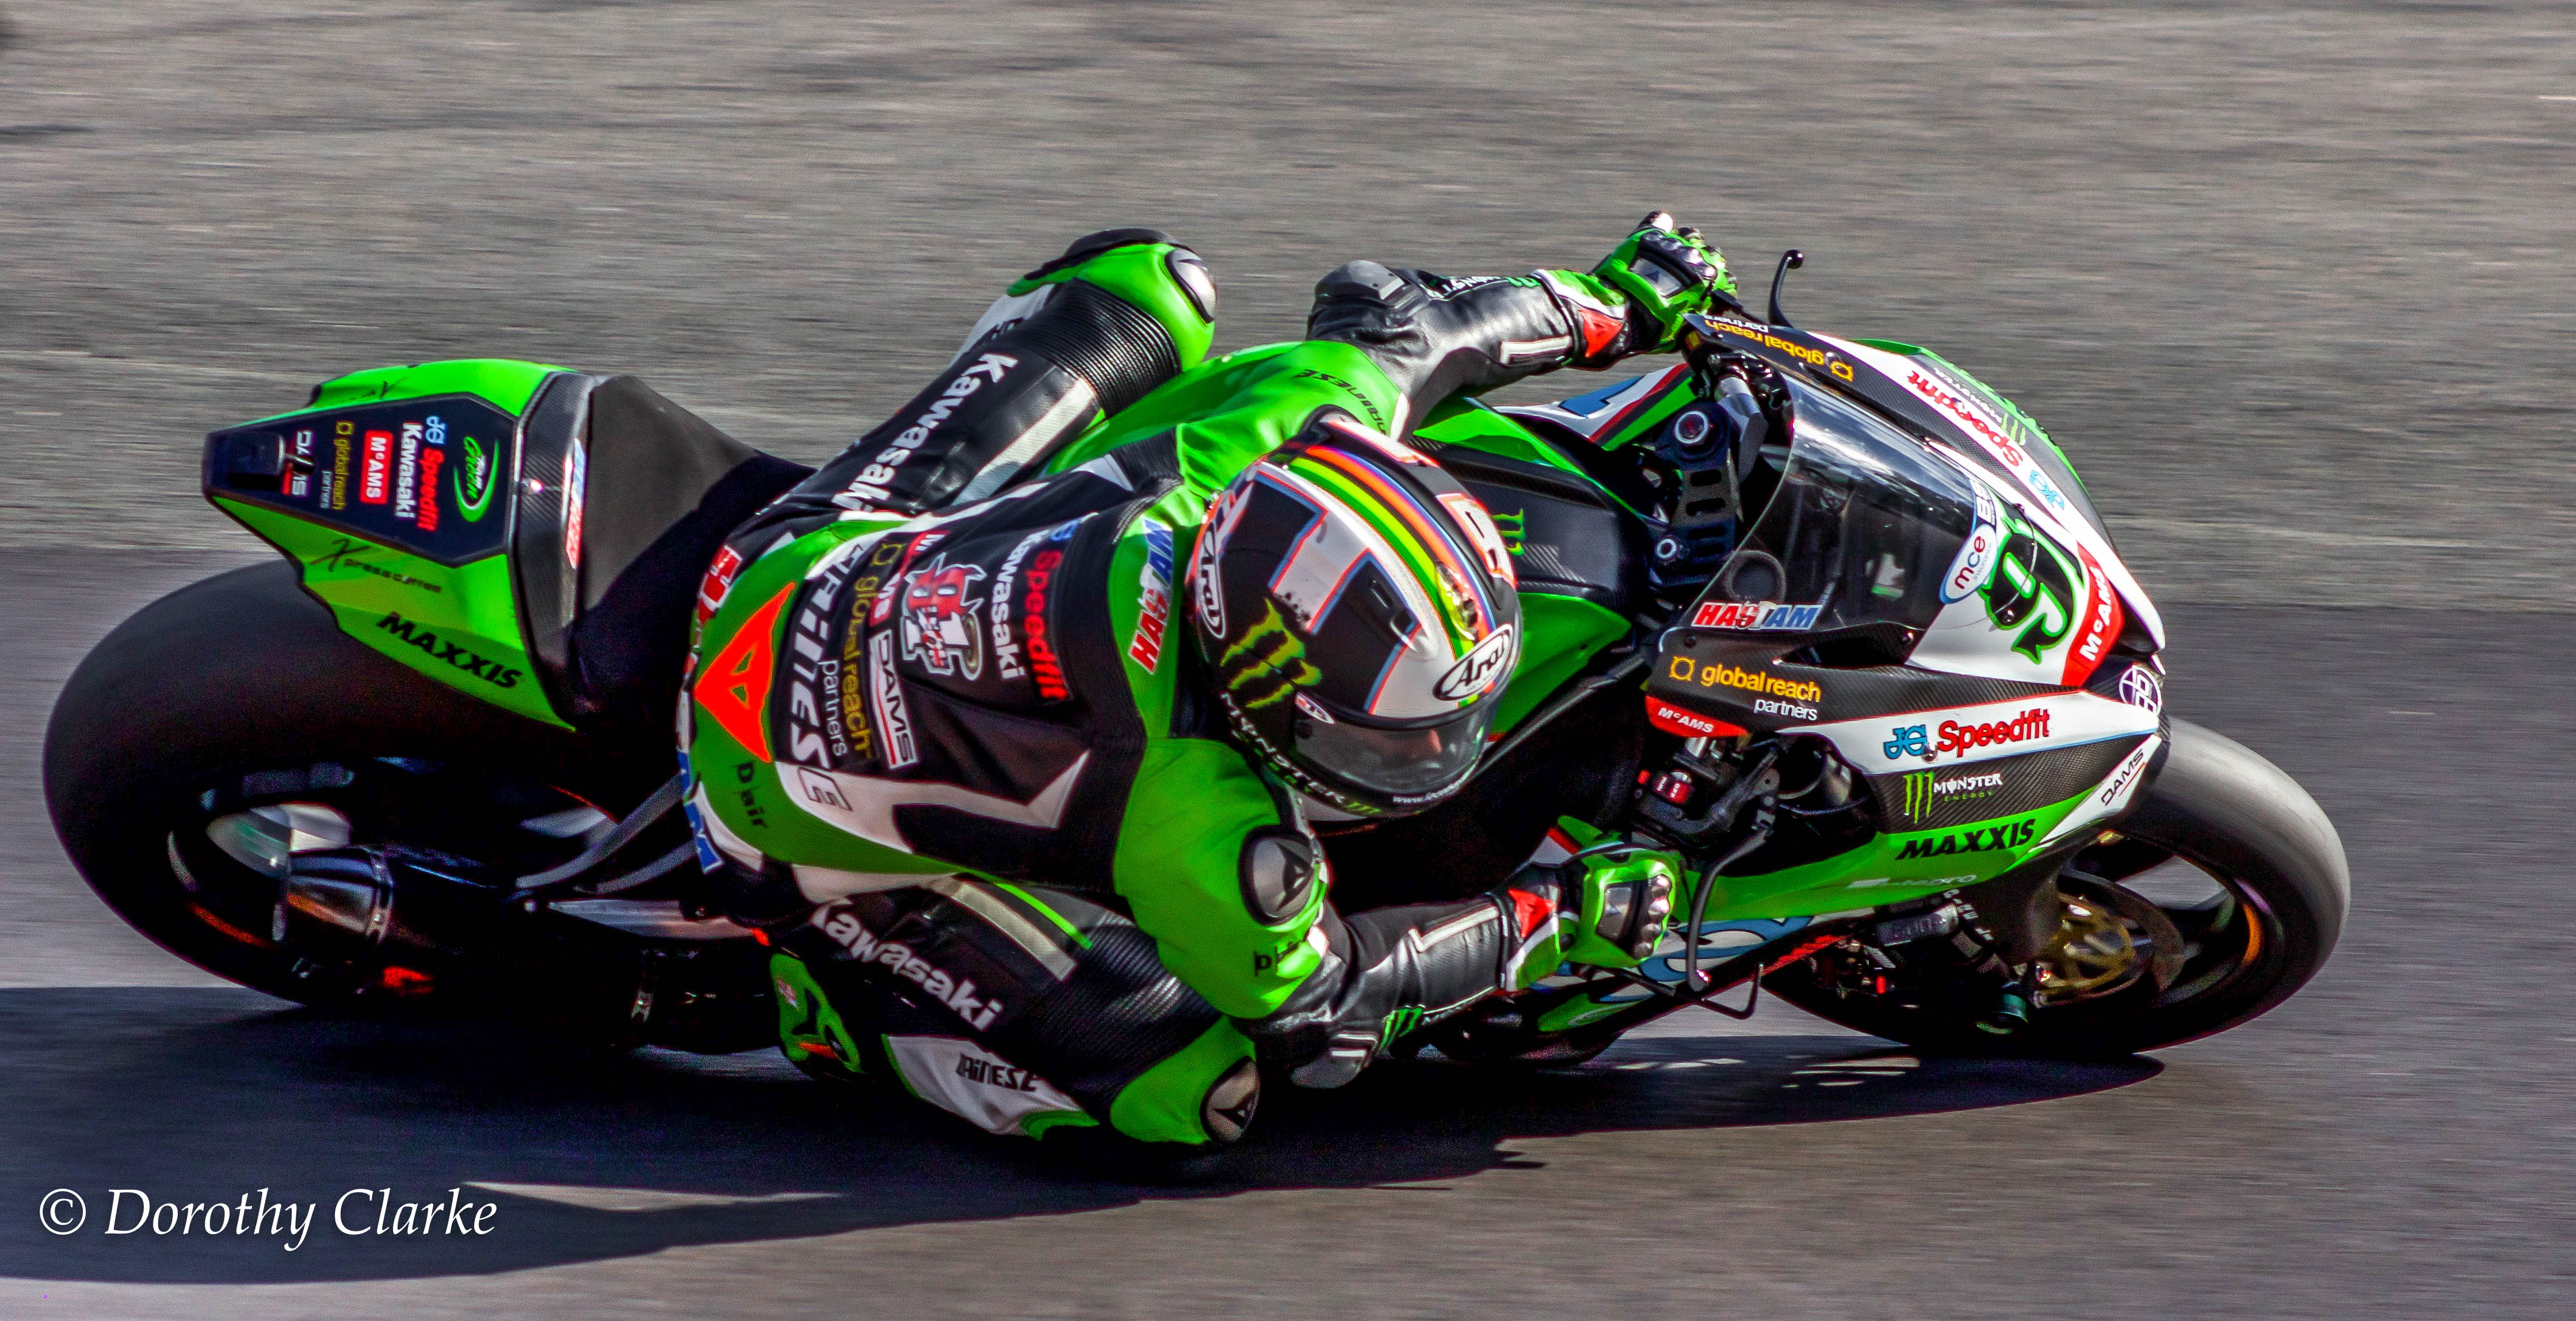 Leon Haslam at The Superbikes